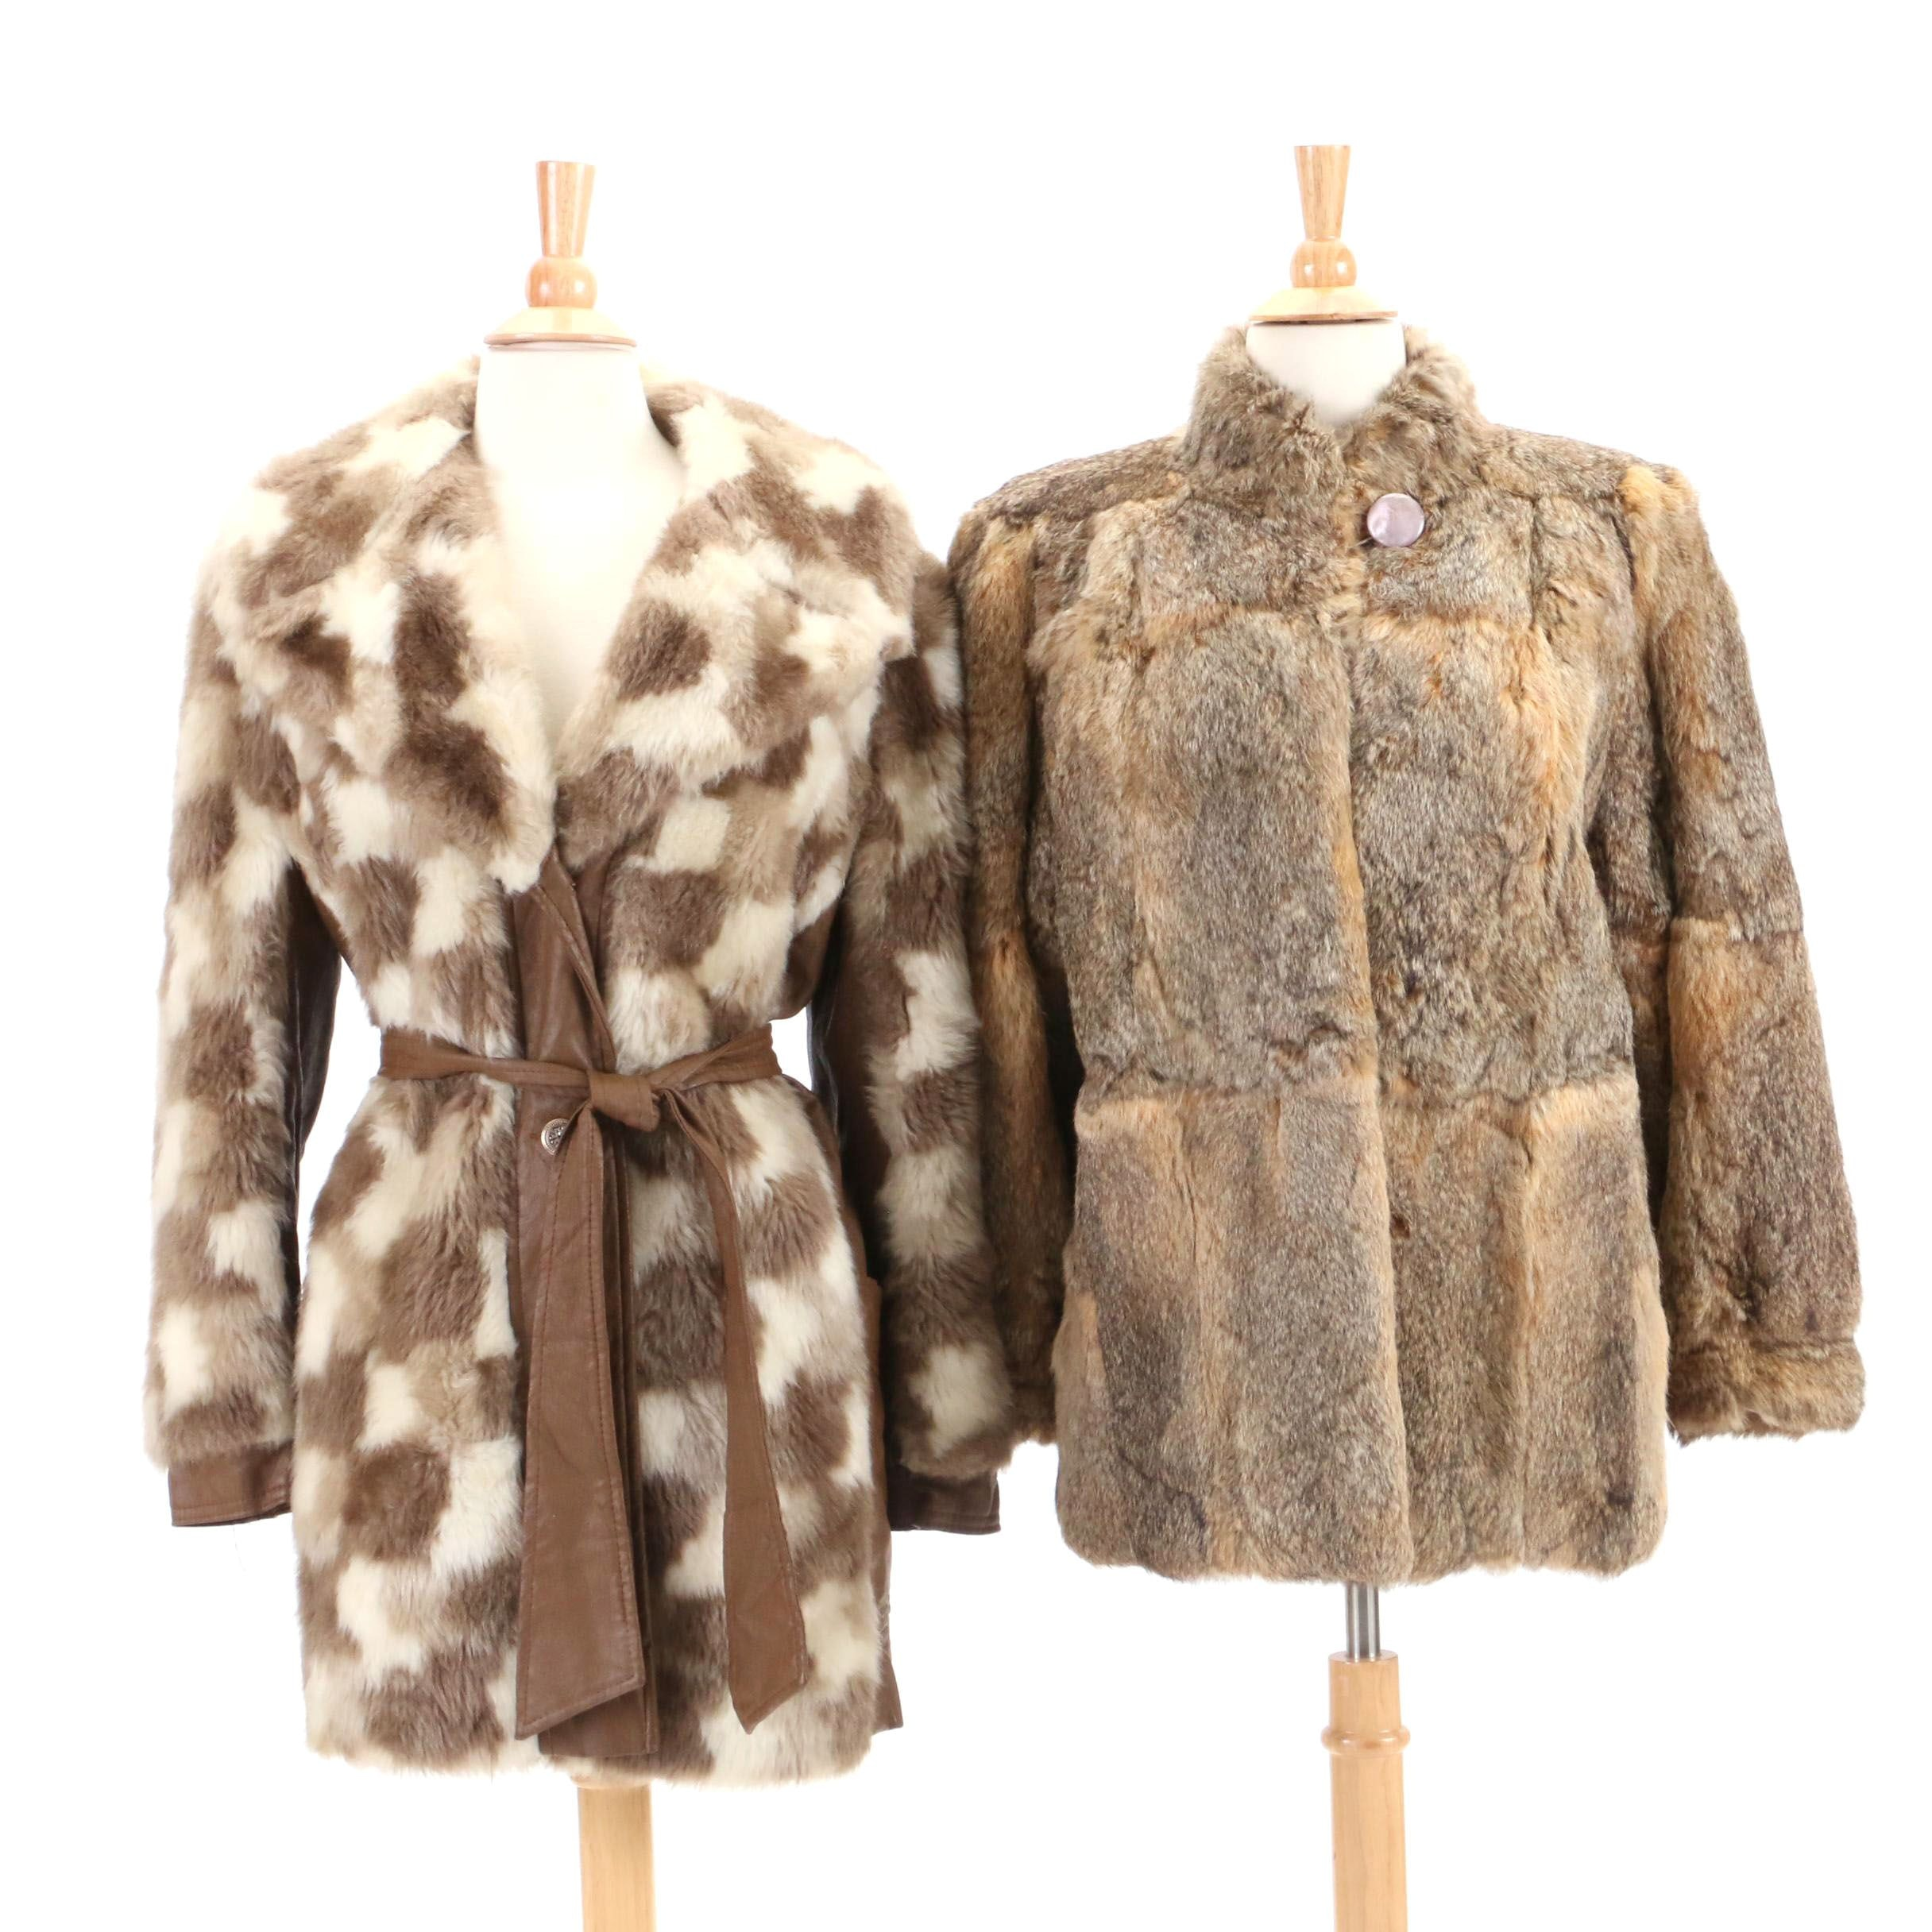 Vintage Rabbit Fur Coat and Faux Fur Jacket